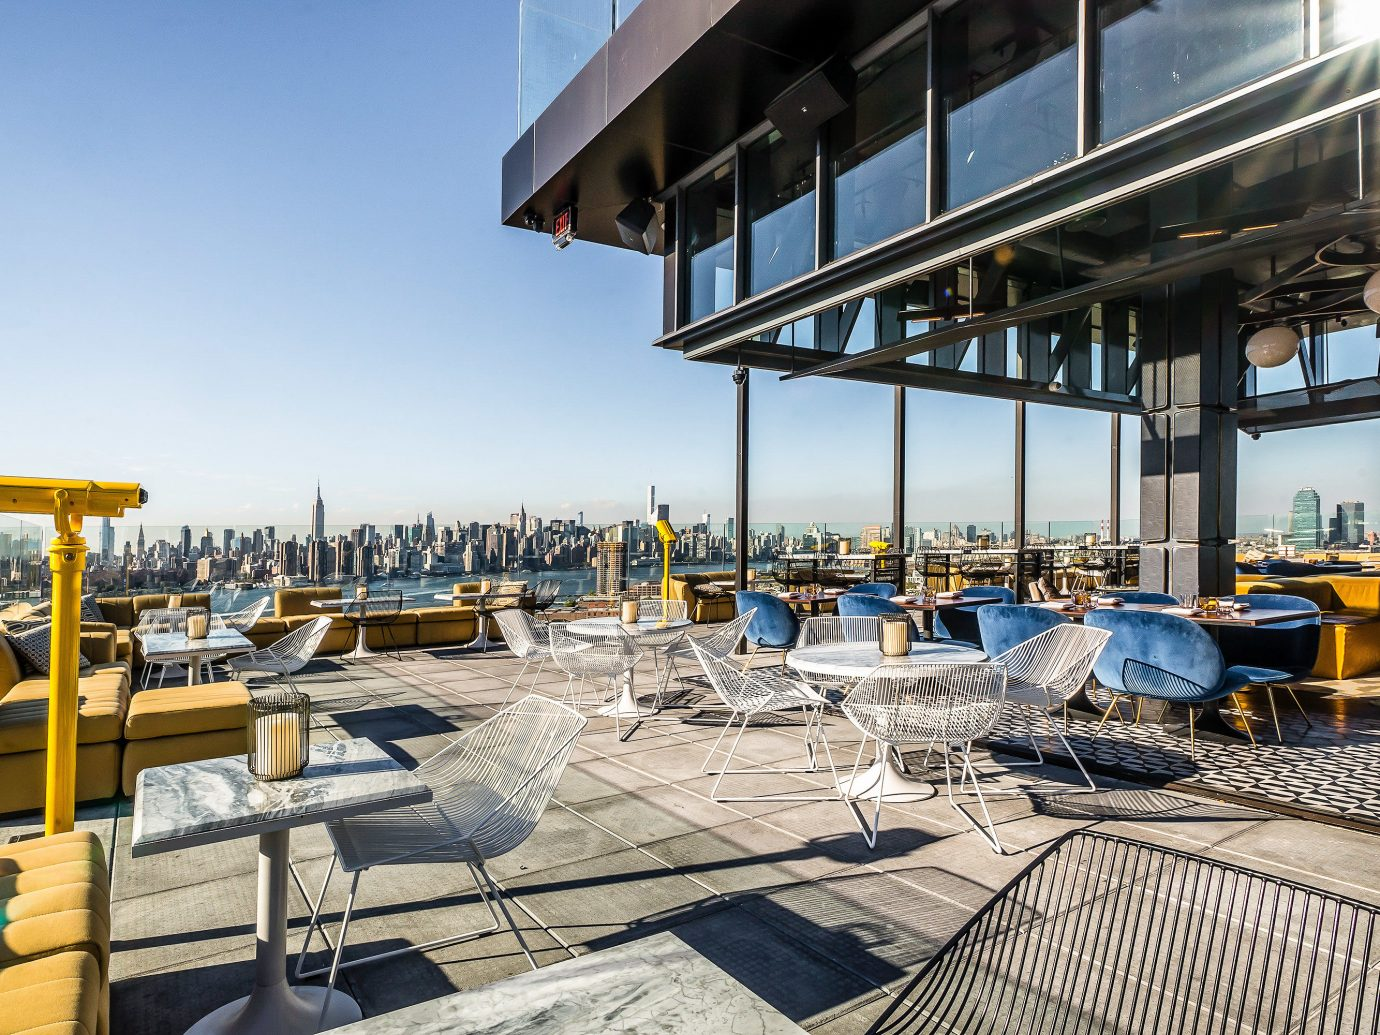 The Best Winter Rooftop Bars in NYC: 7 Spots Open All ...